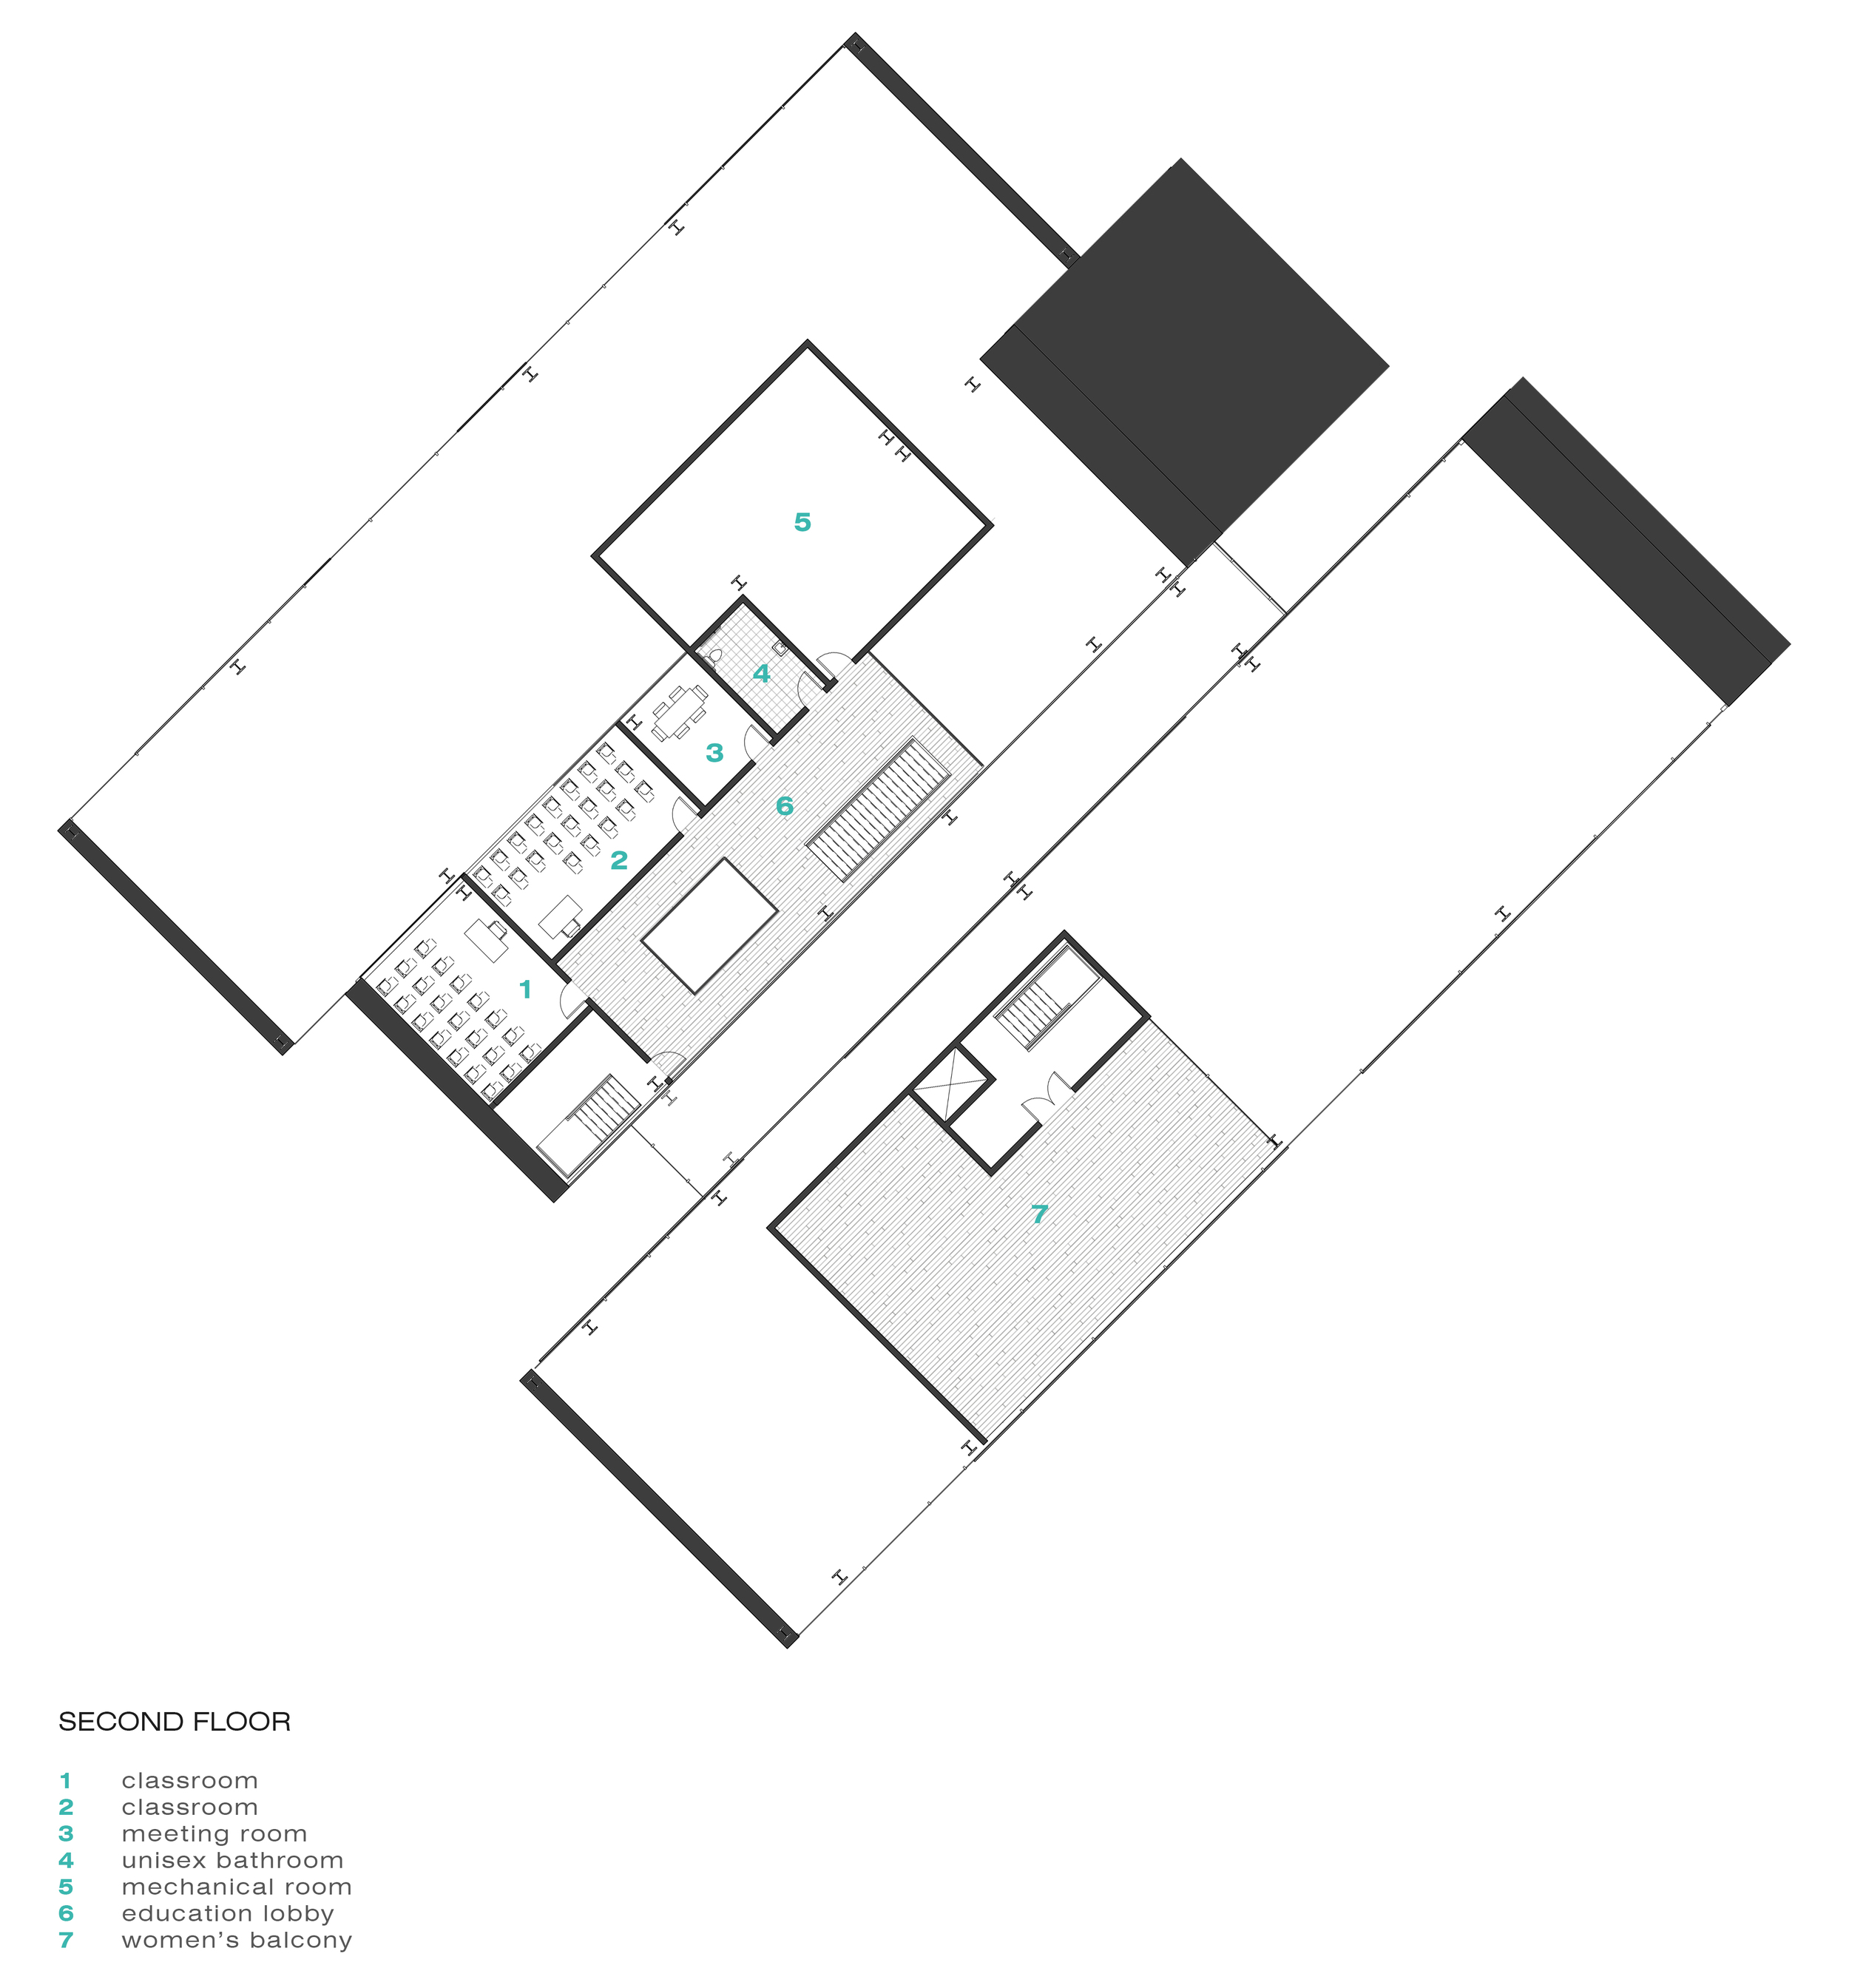 second floor plan.jpg